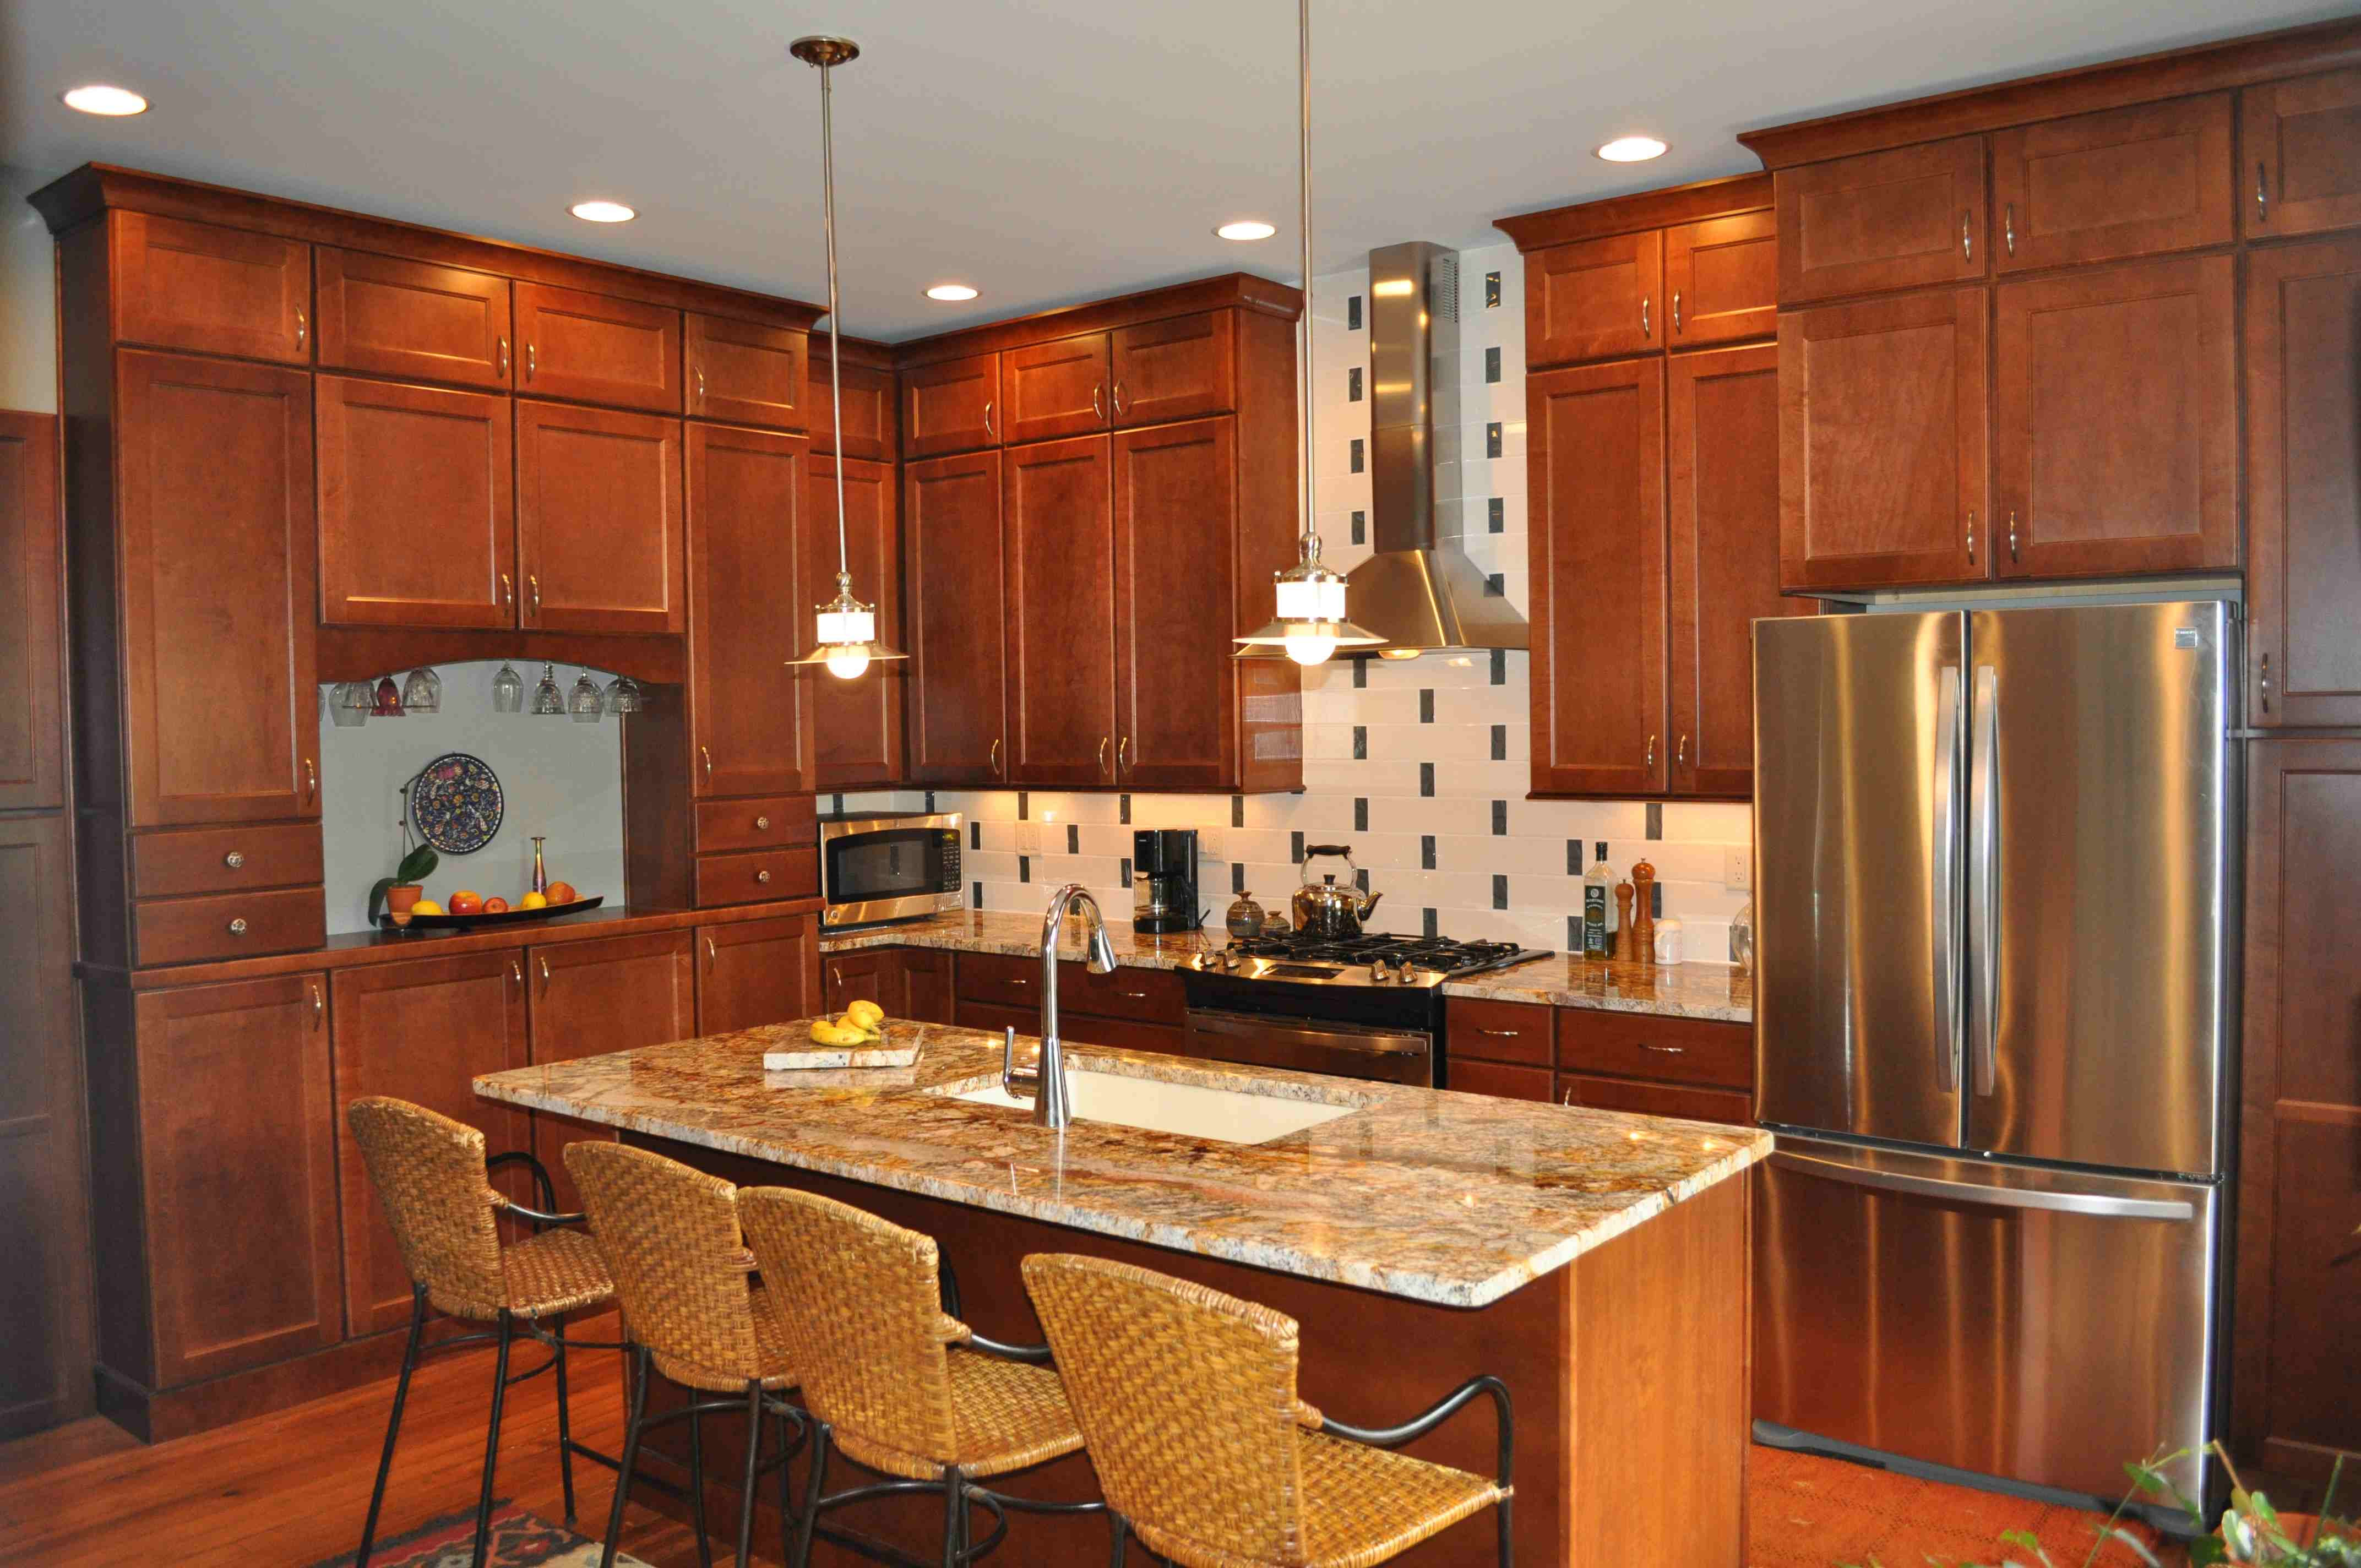 Most Popular Wood For Kitchen Cabinets  Galley Kitchen